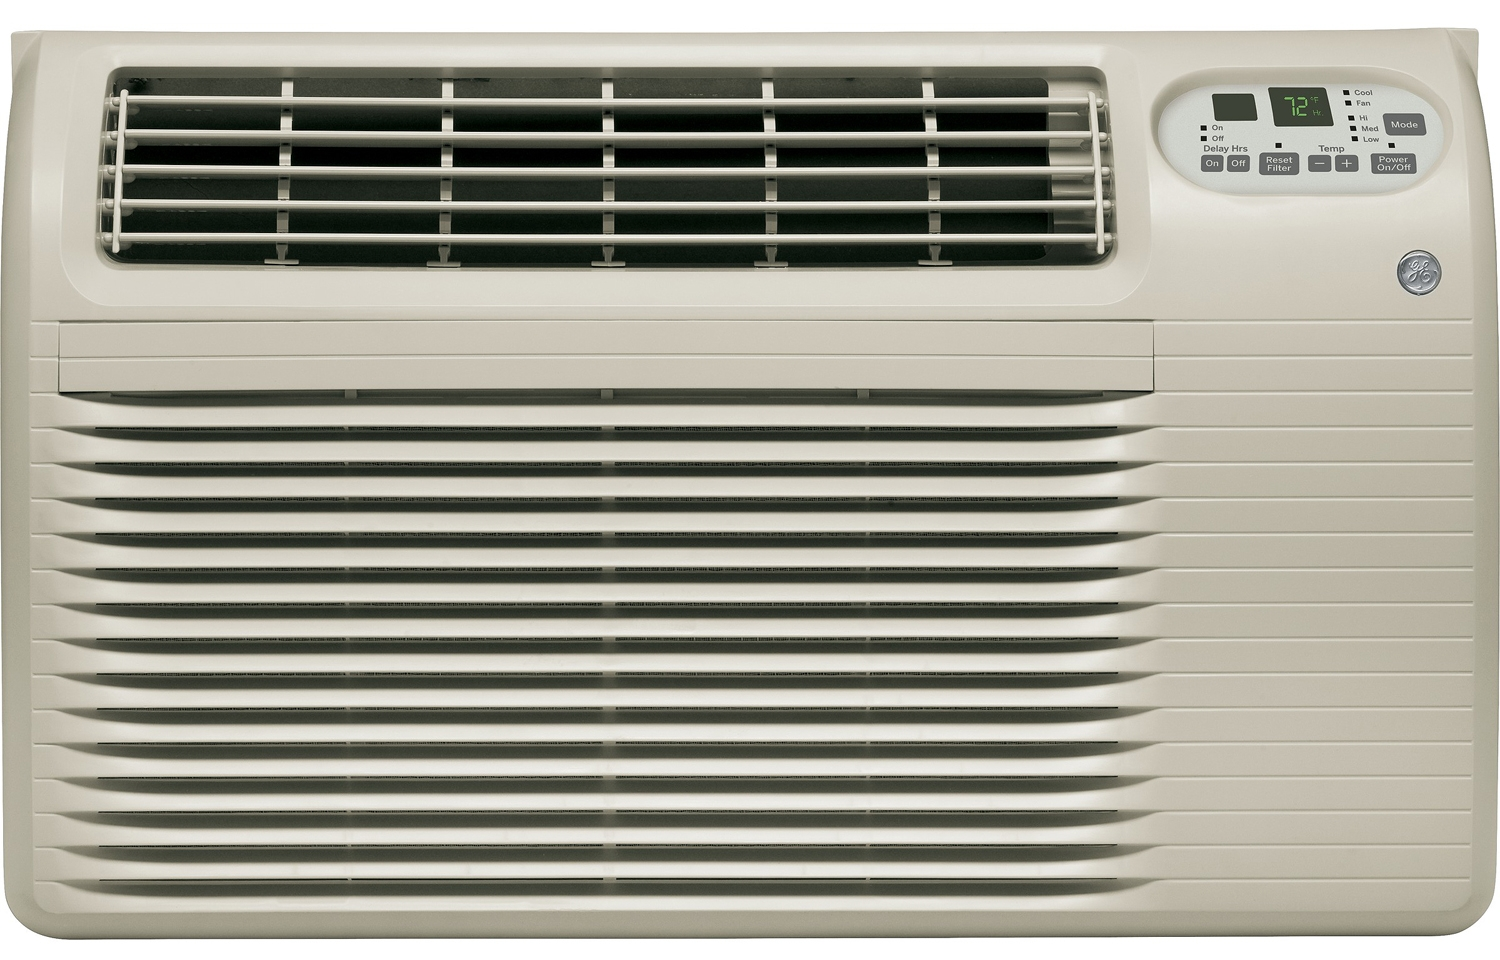 #766C55 GE 6 500 BTU 10.4 EER 115V Air Conditioner AJCQ06LCF Best 10603 Air Conditioner Wall Sleeve photos with 1500x960 px on helpvideos.info - Air Conditioners, Air Coolers and more